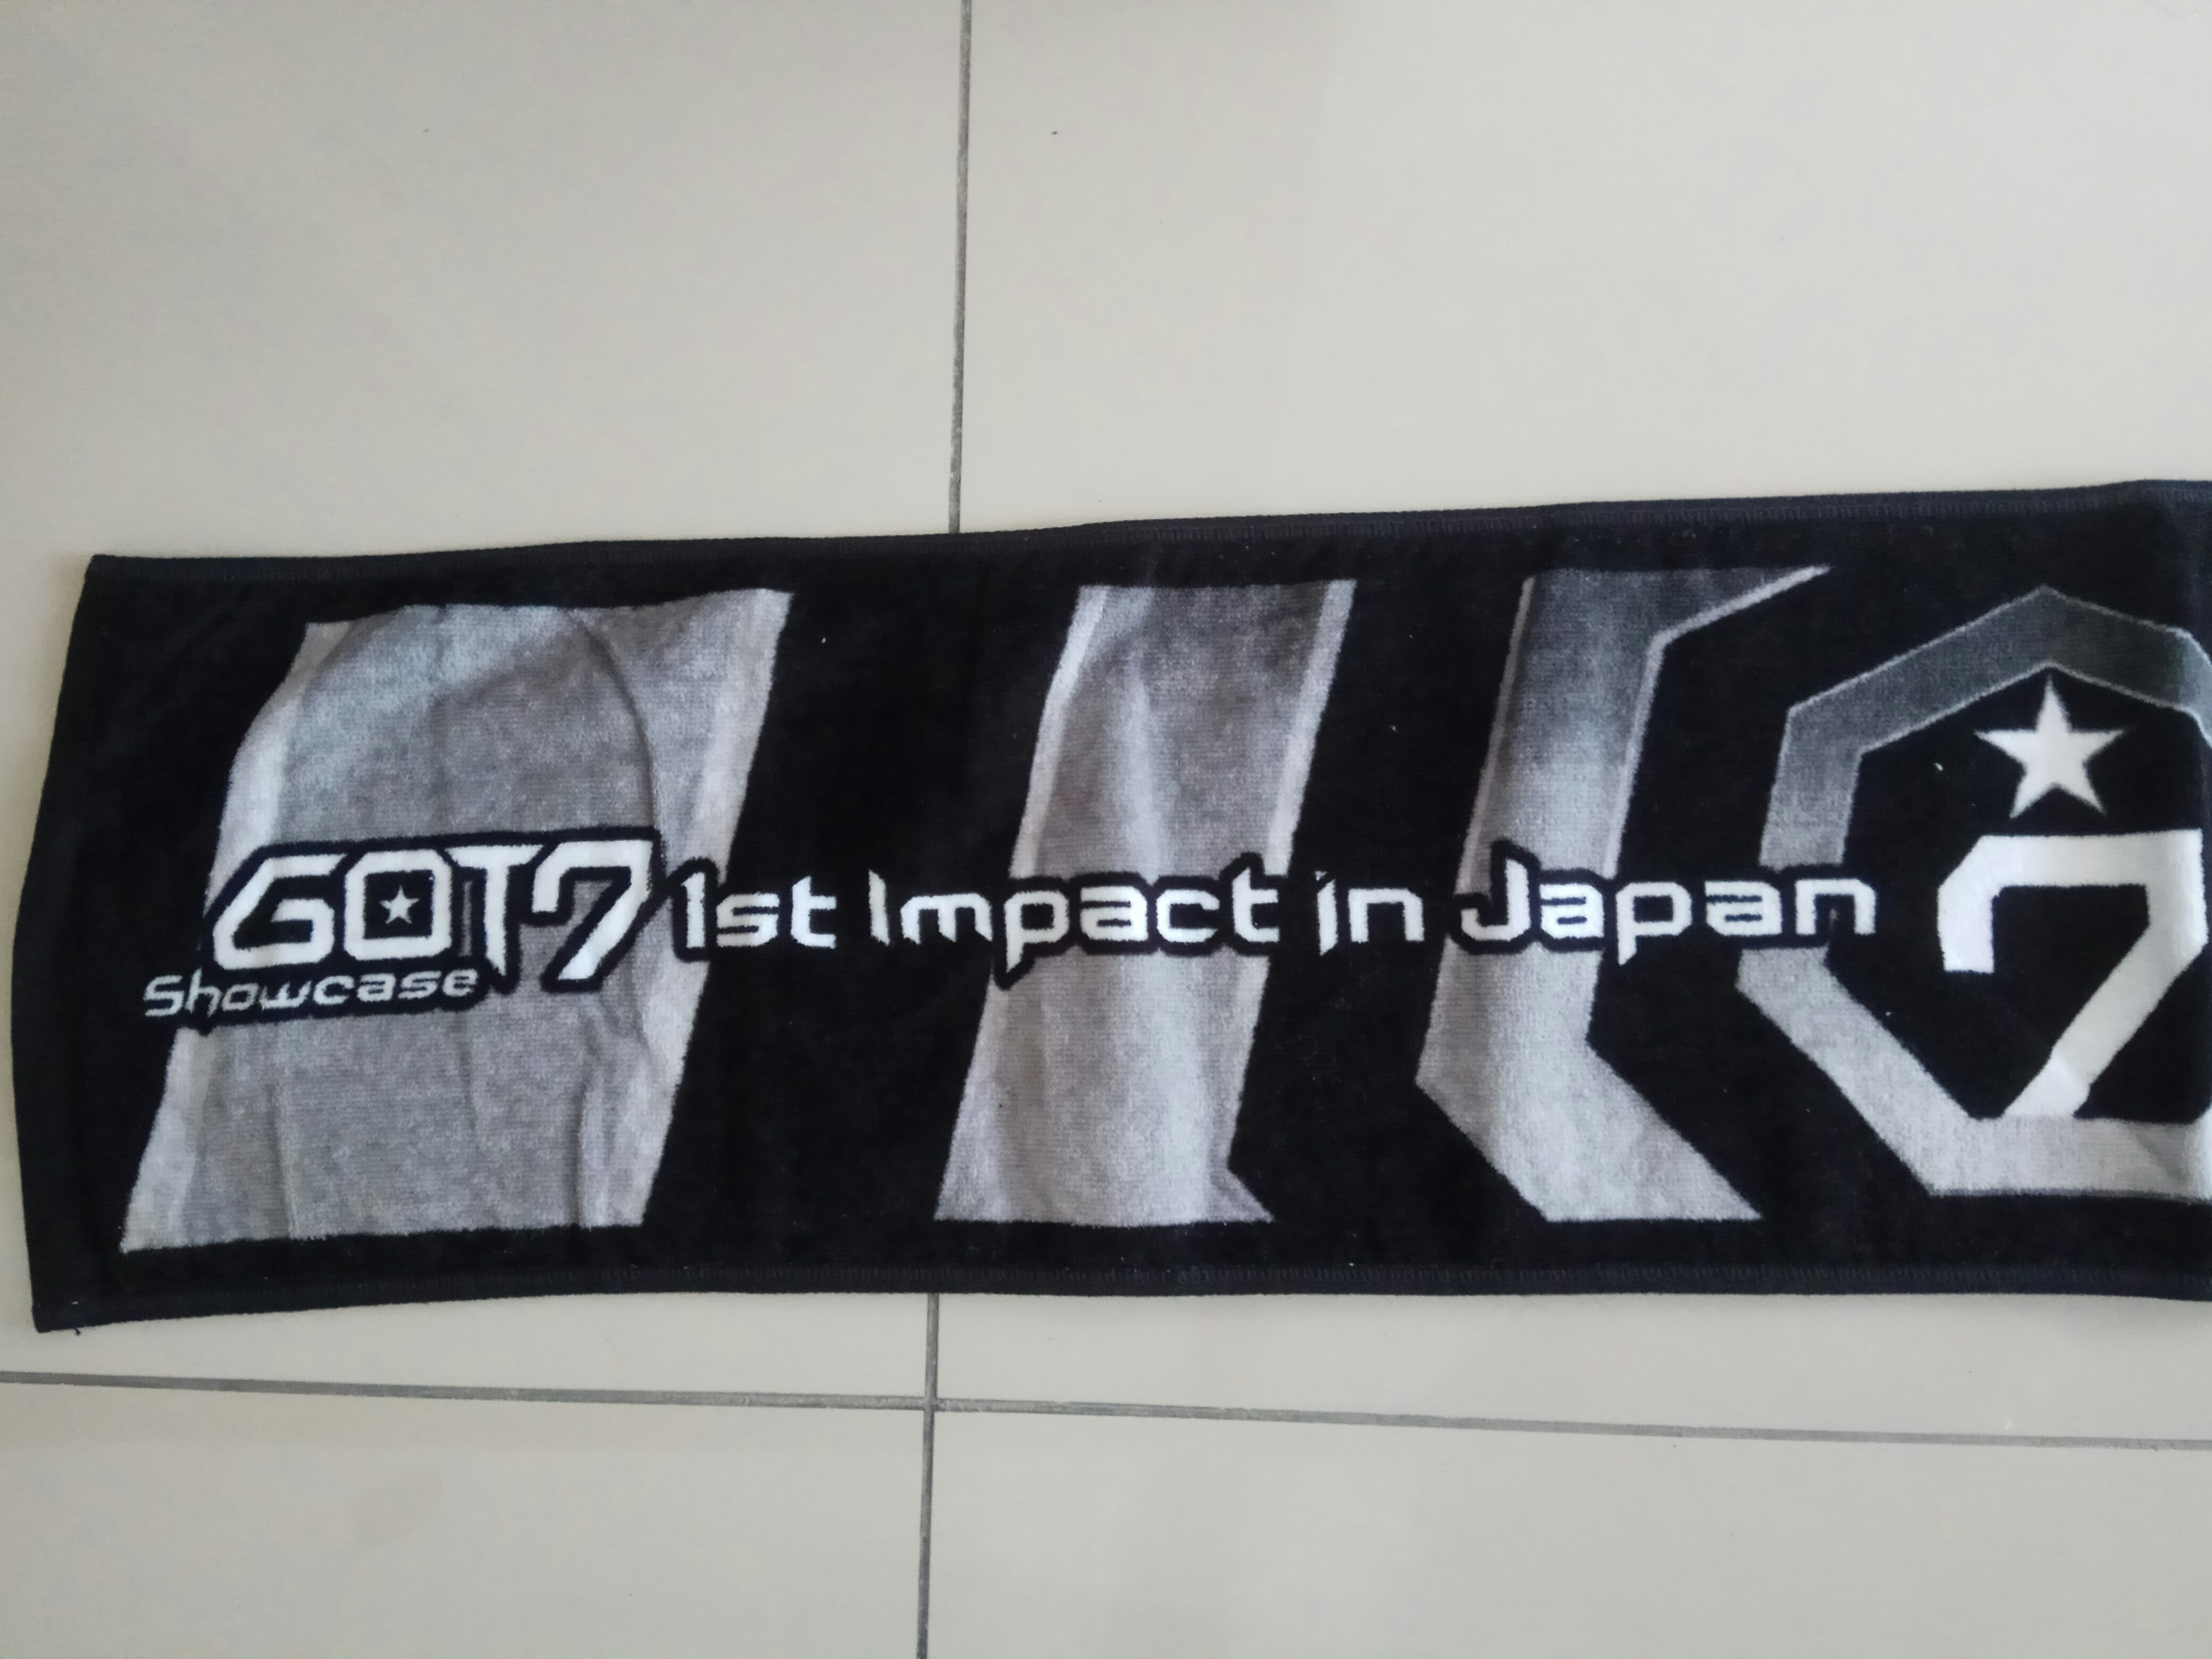 Got7 official showcase 1st impact in Japan towel